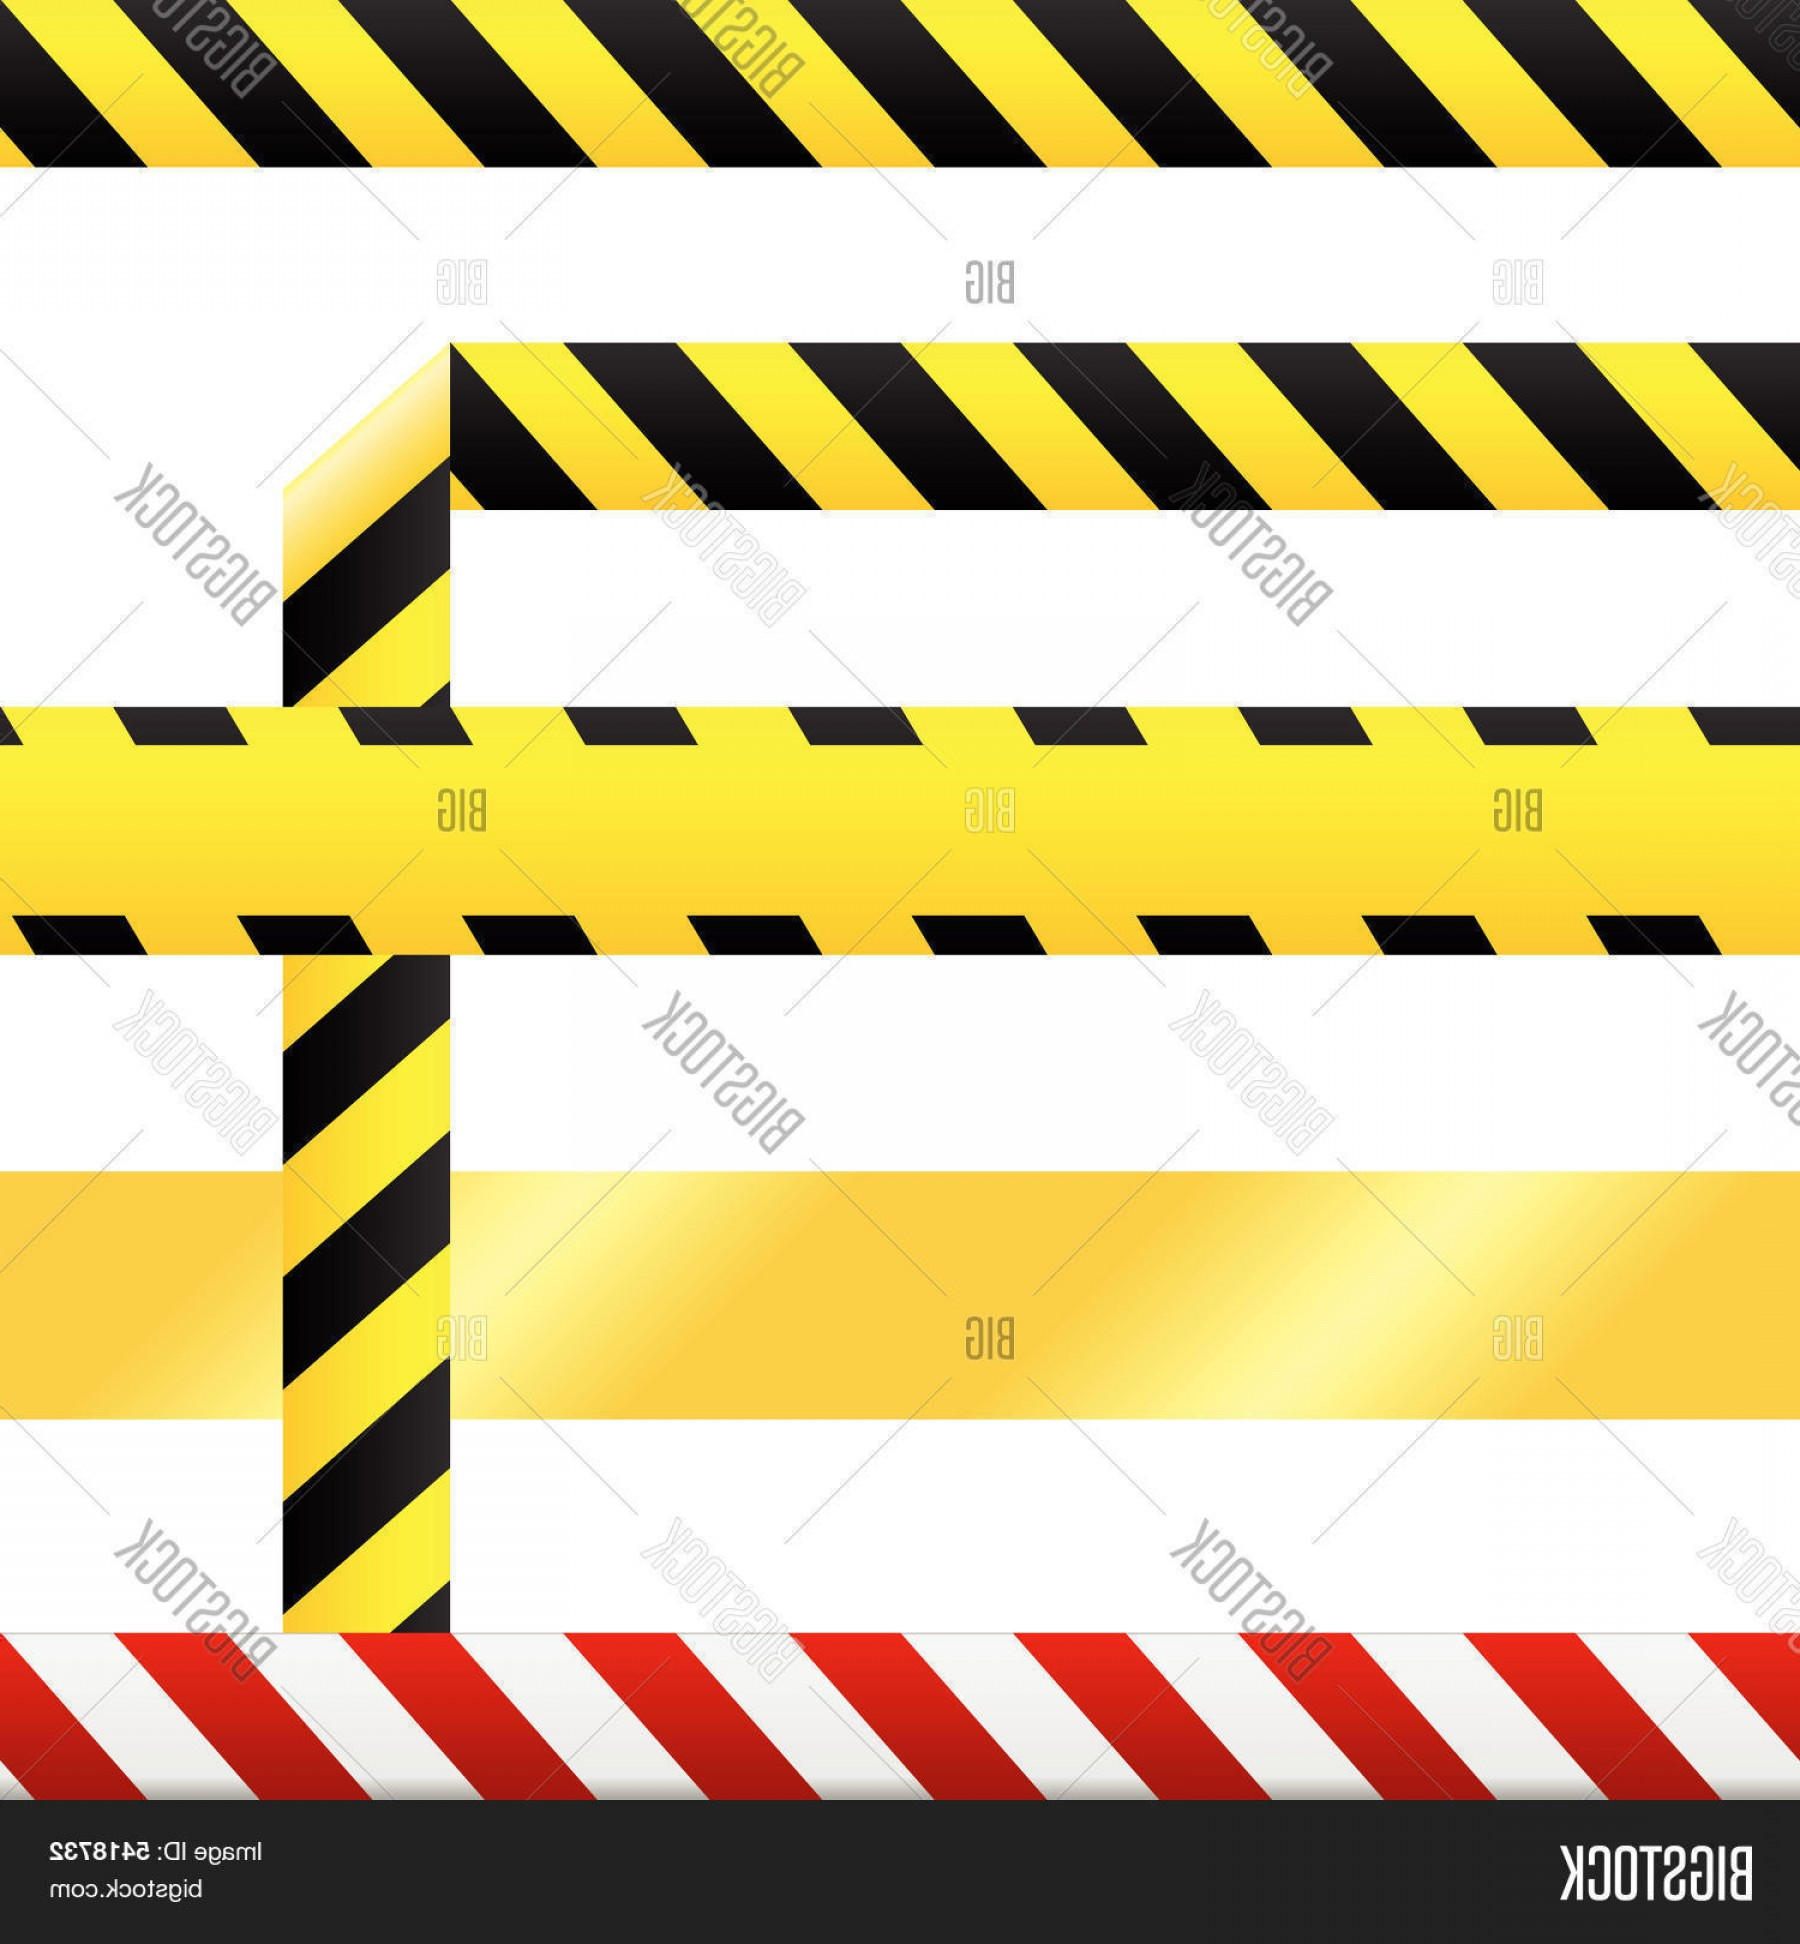 Caution Stripes Vector: Stock Vector Caution Tape And Warning Signs In Seamless Vector